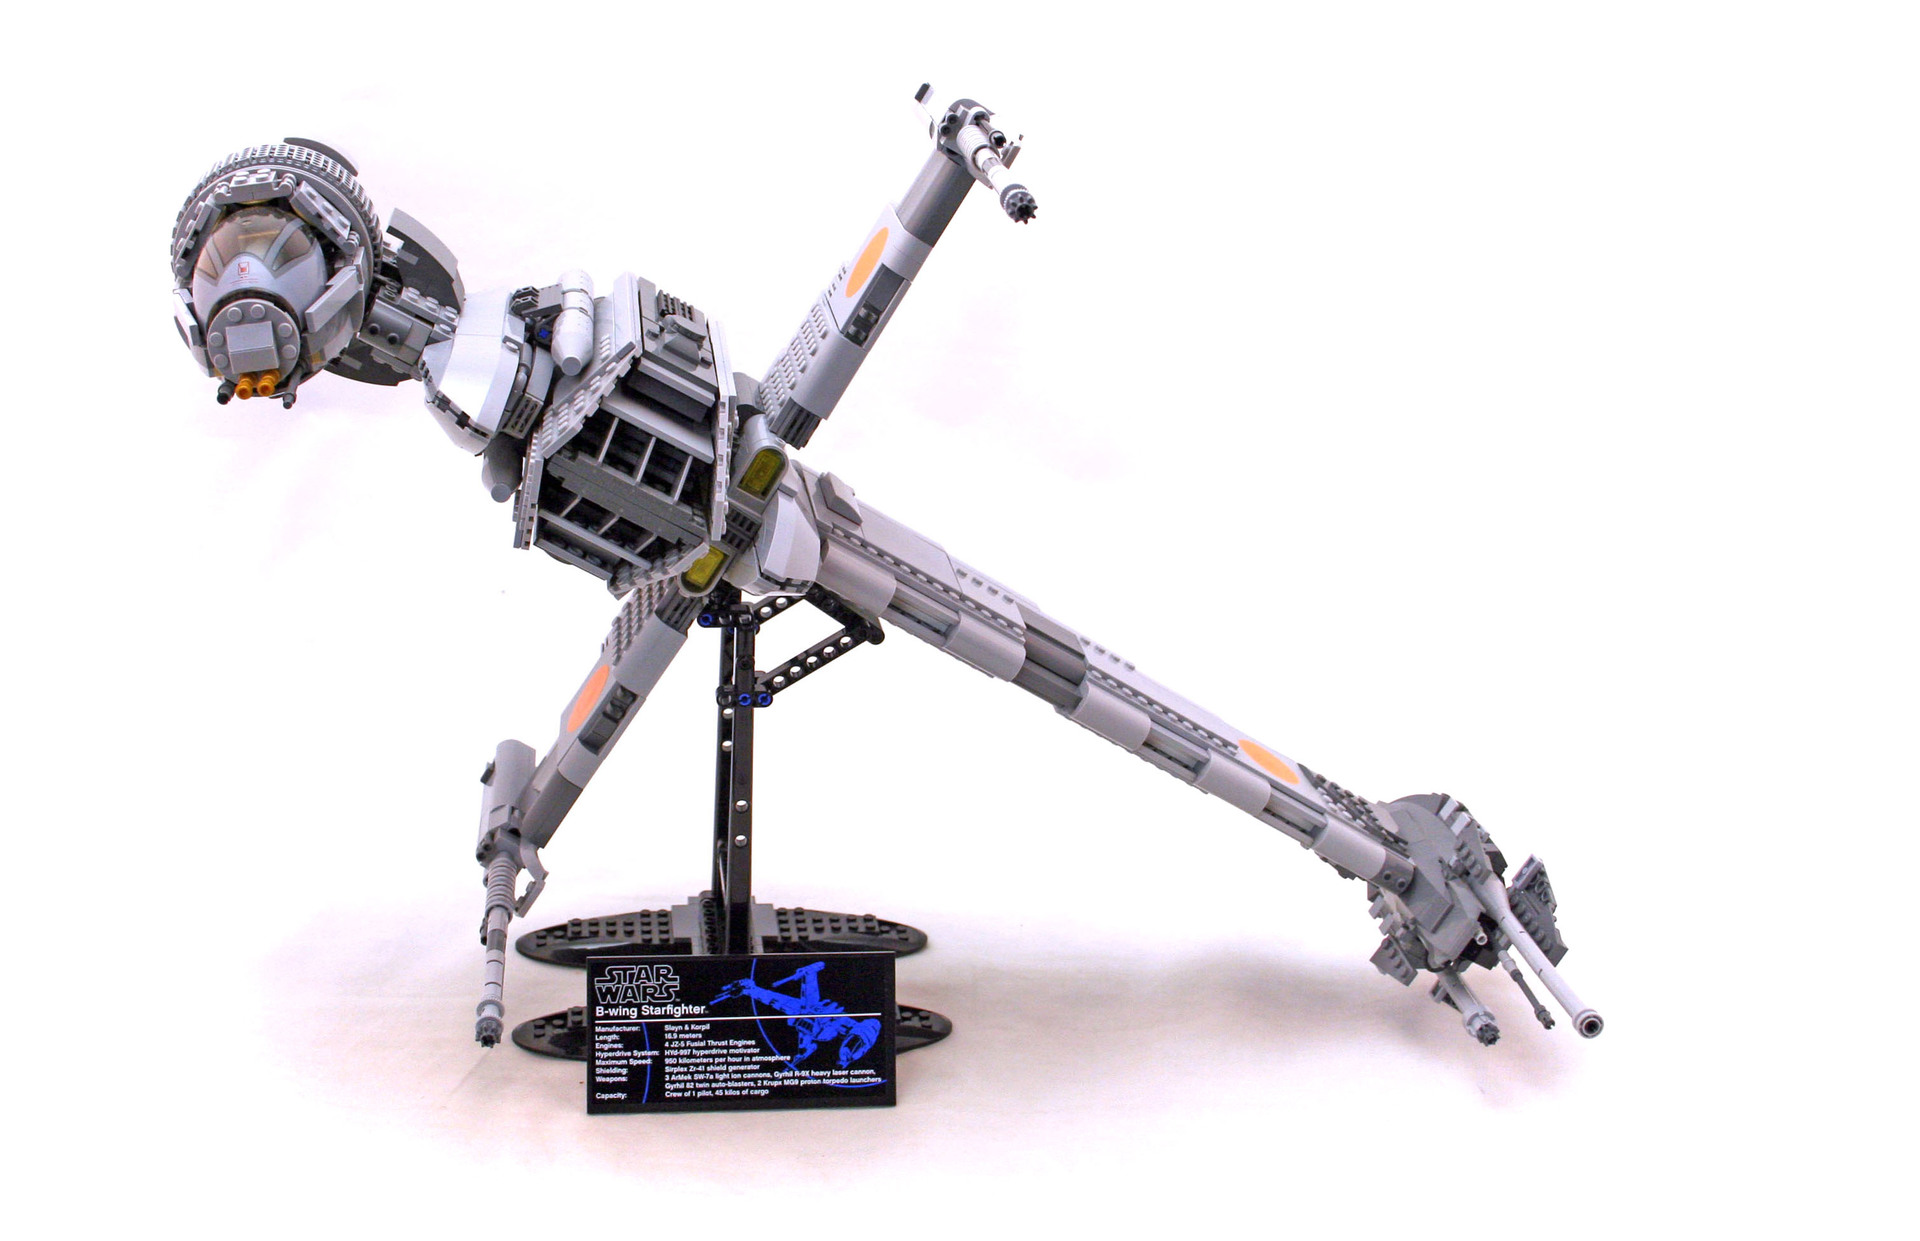 lego star wars 10227 instructions